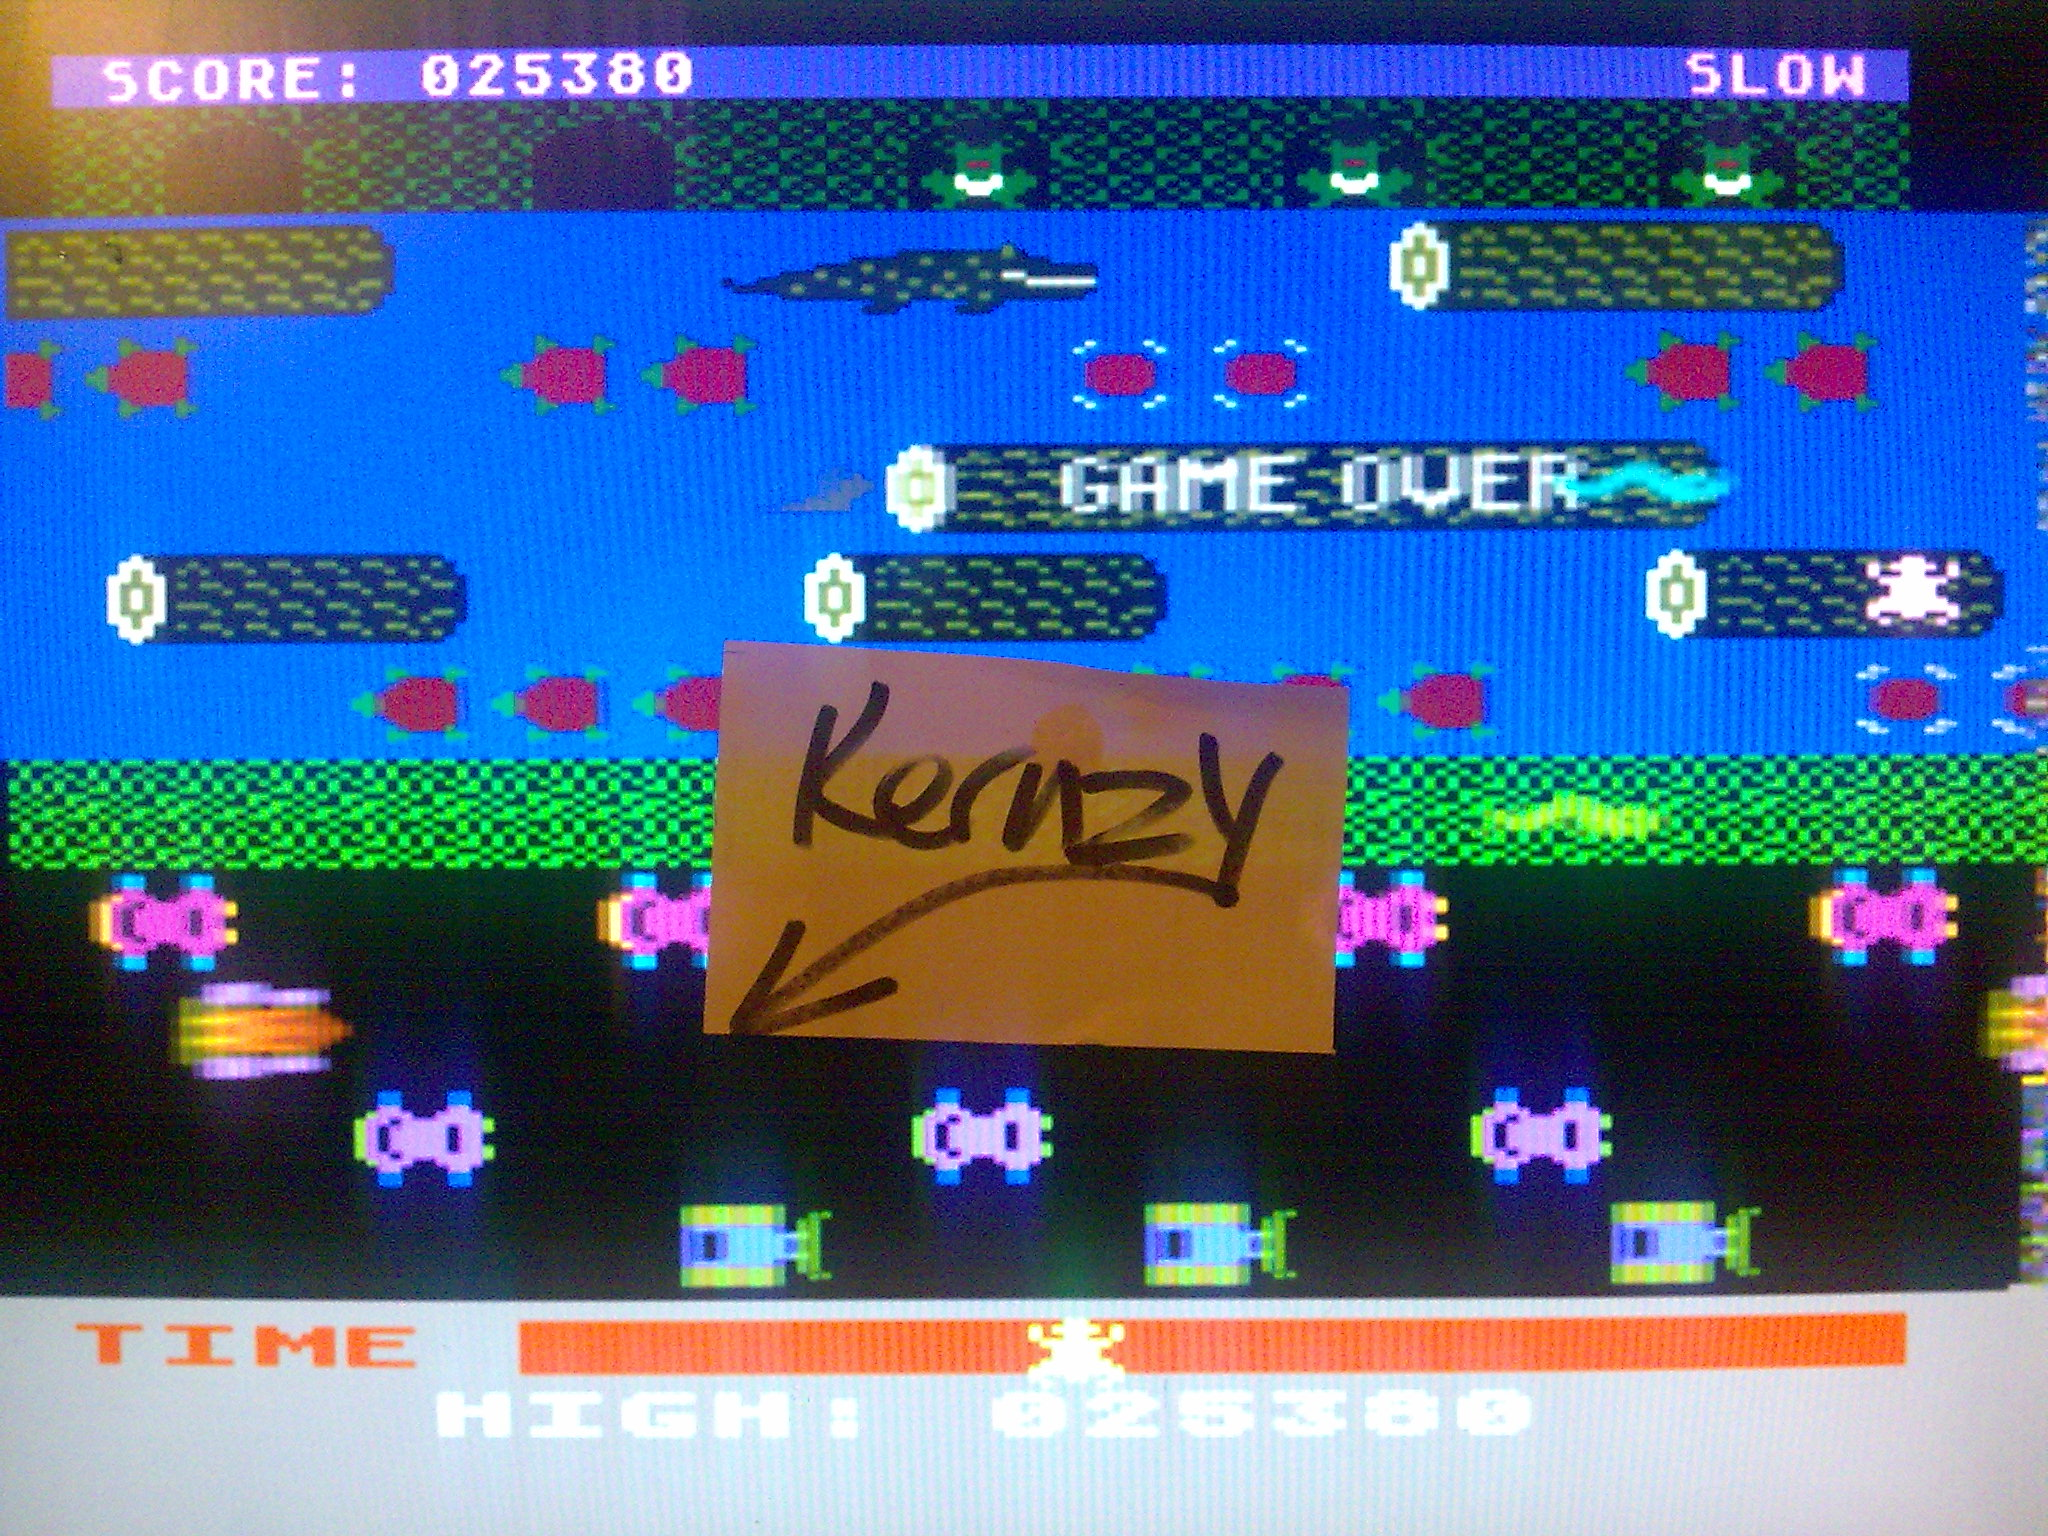 kernzy: Frogger: Slow [Sierra Online/Chuck Benton] (Atari 400/800/XL/XE Emulated) 25,380 points on 2014-10-17 21:01:08